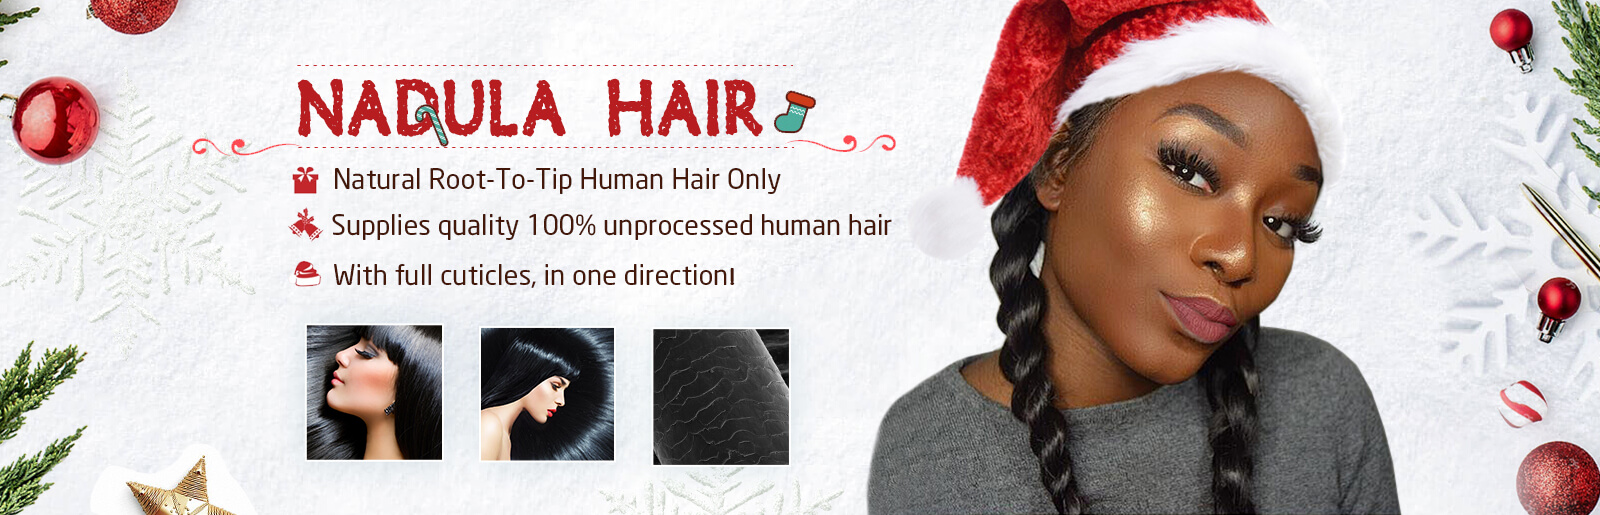 full cuticle in one direction virgin brazilian human hair